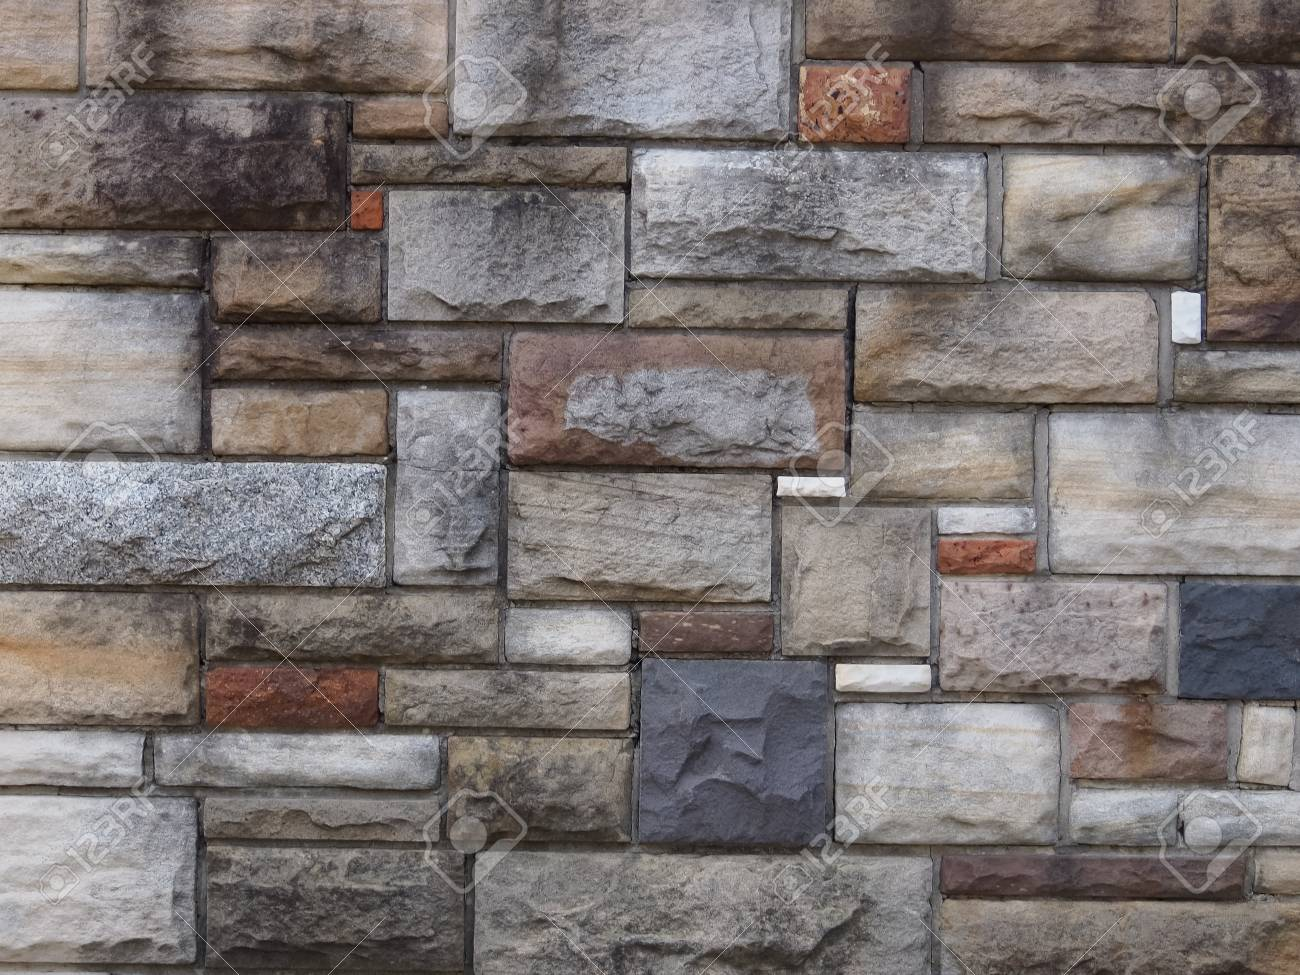 Brick Wall Design Modern Brick Wall Patterns Background And Texture For Design